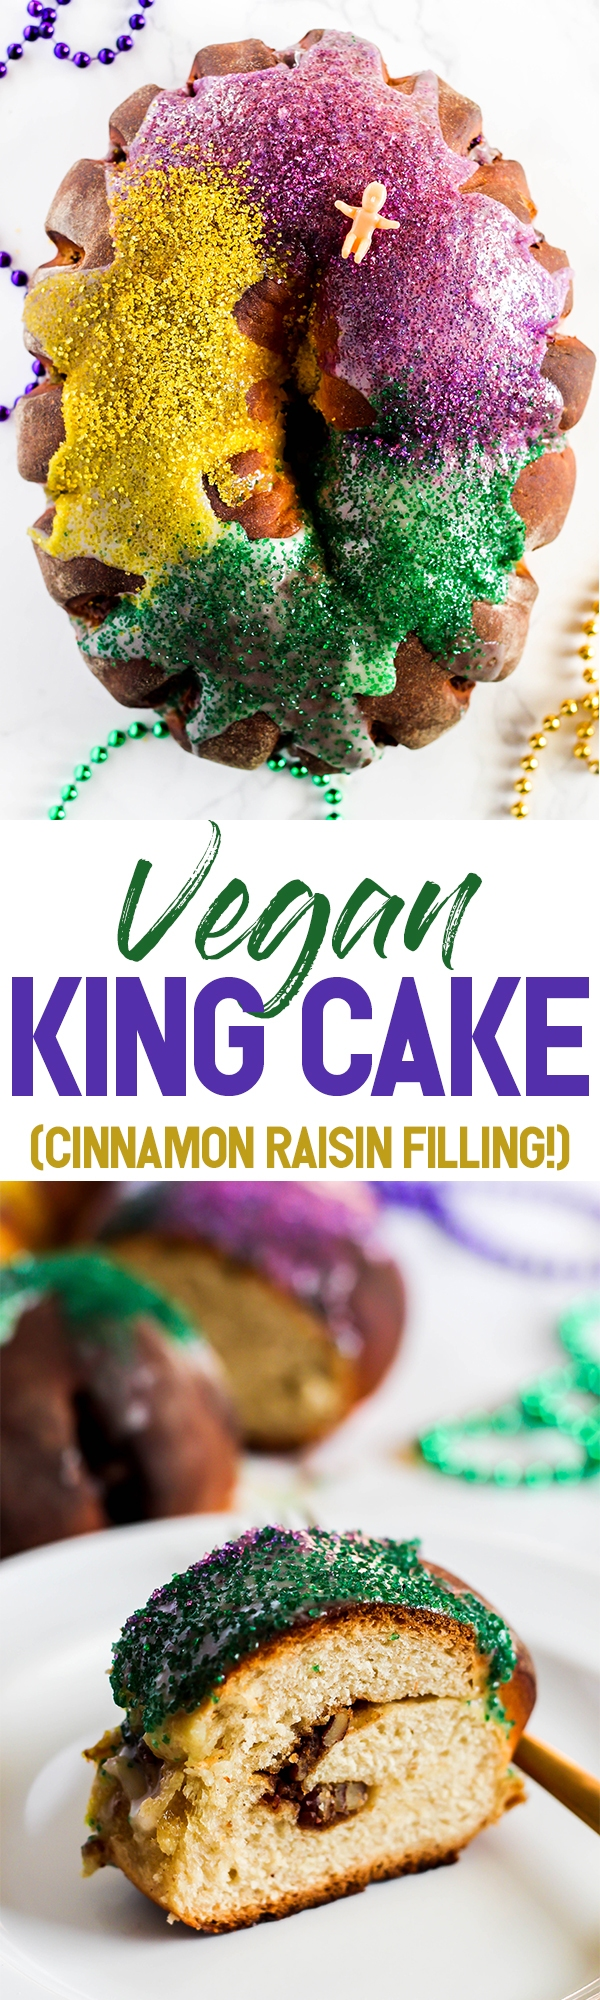 Even if you don't live in the south, you can still enjoy the flavors of Mardi Gras with this traditional Vegan King Cake recipe! It's fluffy with a cinnamon raisin filling and a sugary glaze that will satisfy everyone.